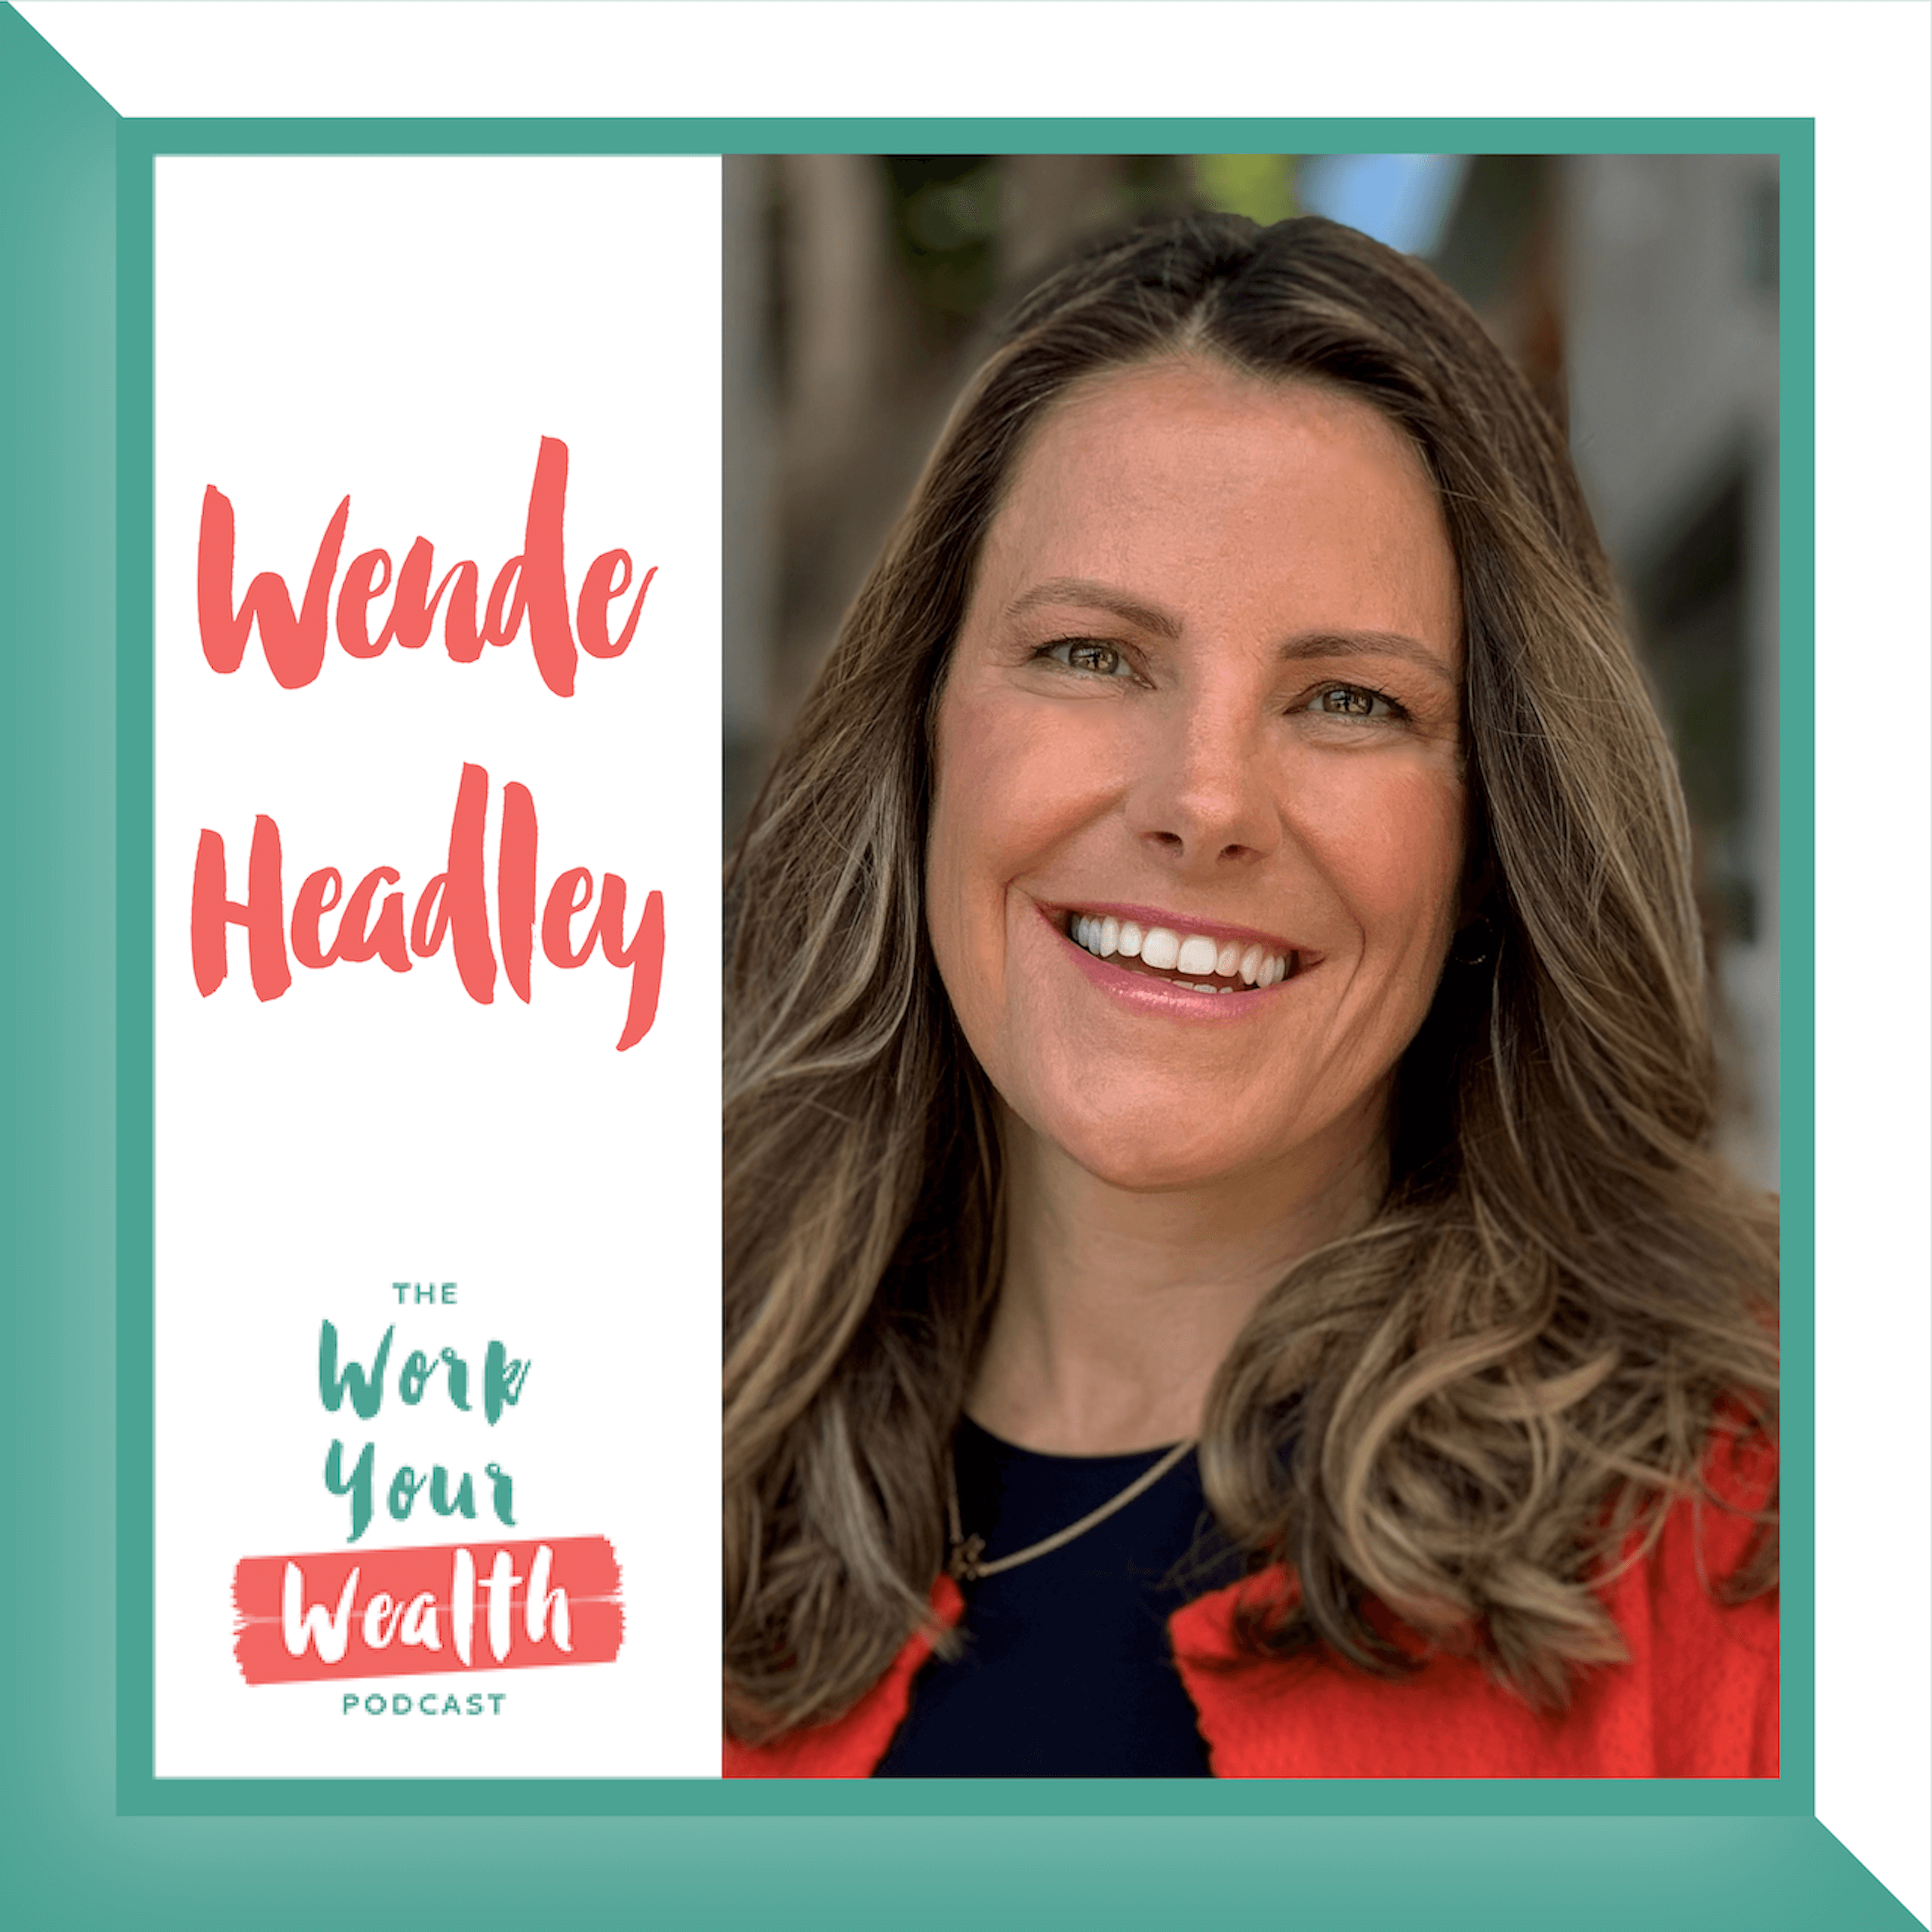 Episode 110: Financial Planning Needs for Women with Wende Headley